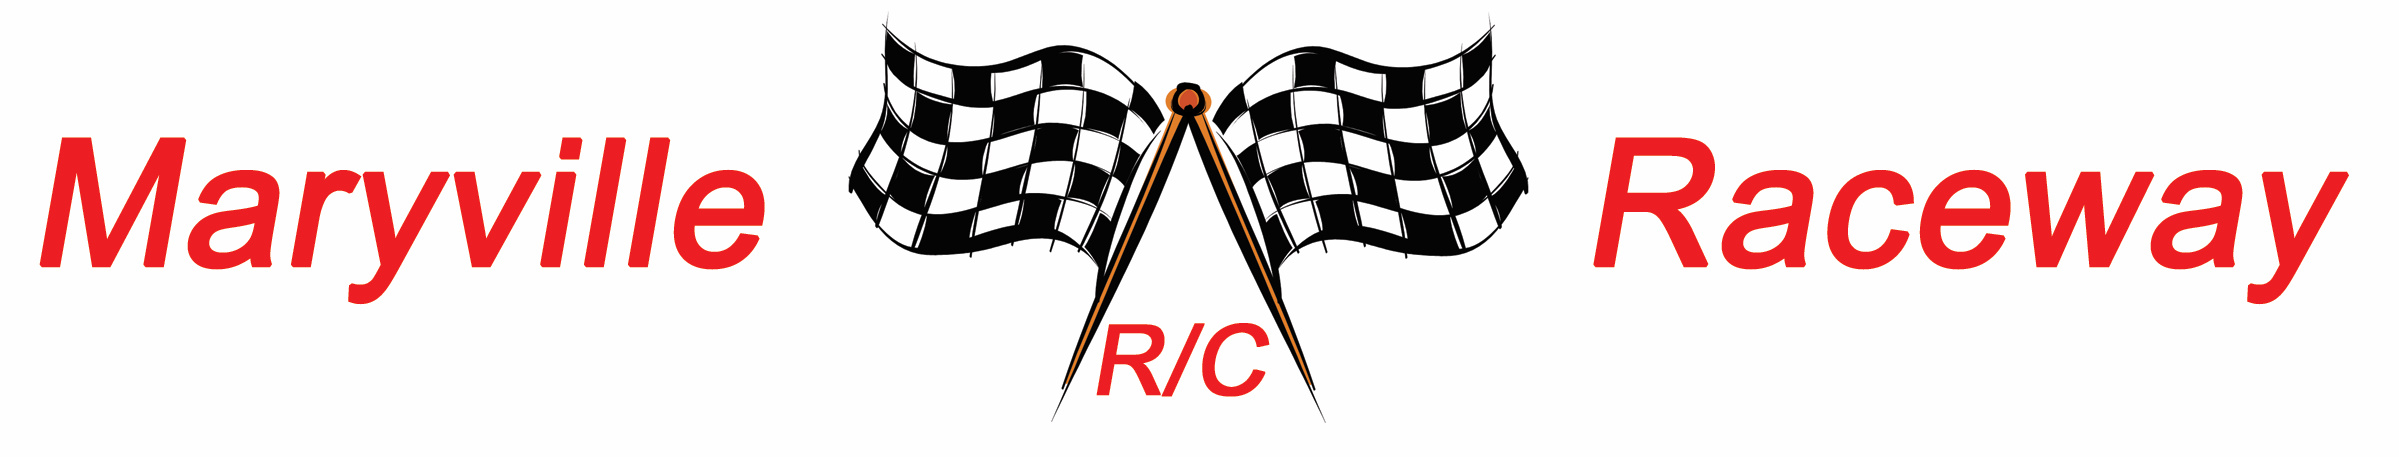 Visit the Maryville Raceway in Maryville, Illinois Website